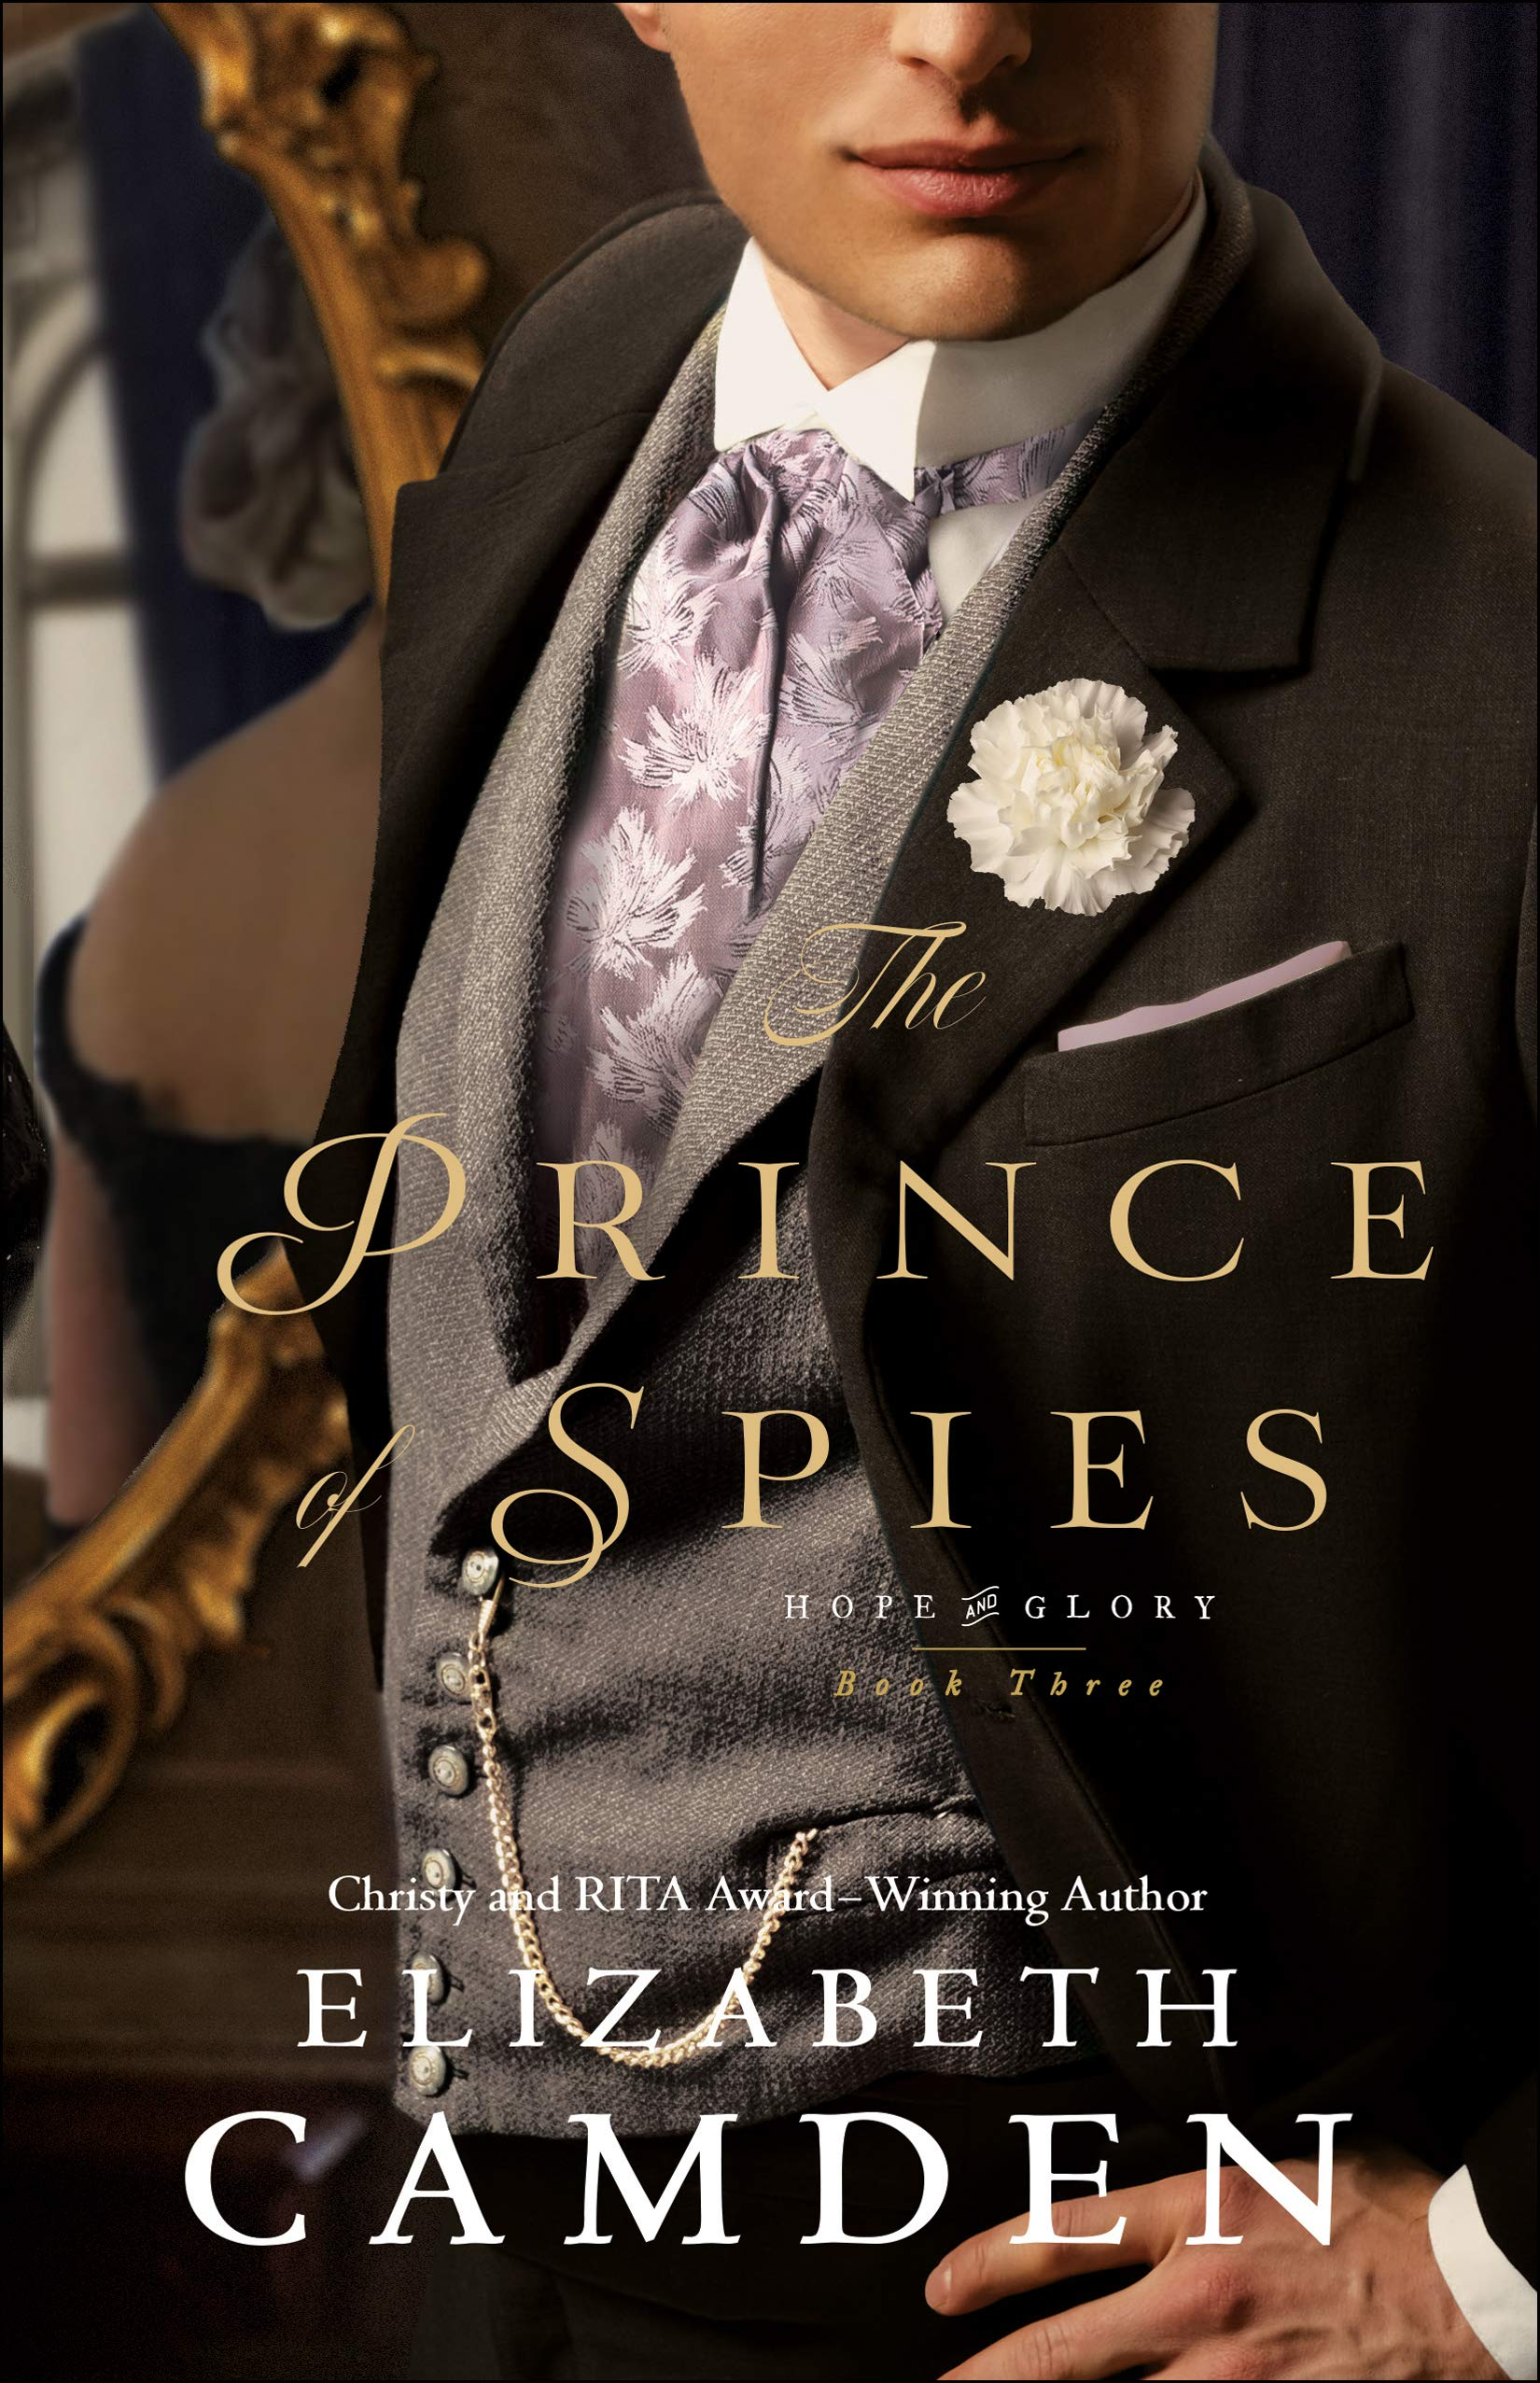 The Prince of Spies (Hope and Glory, #3)